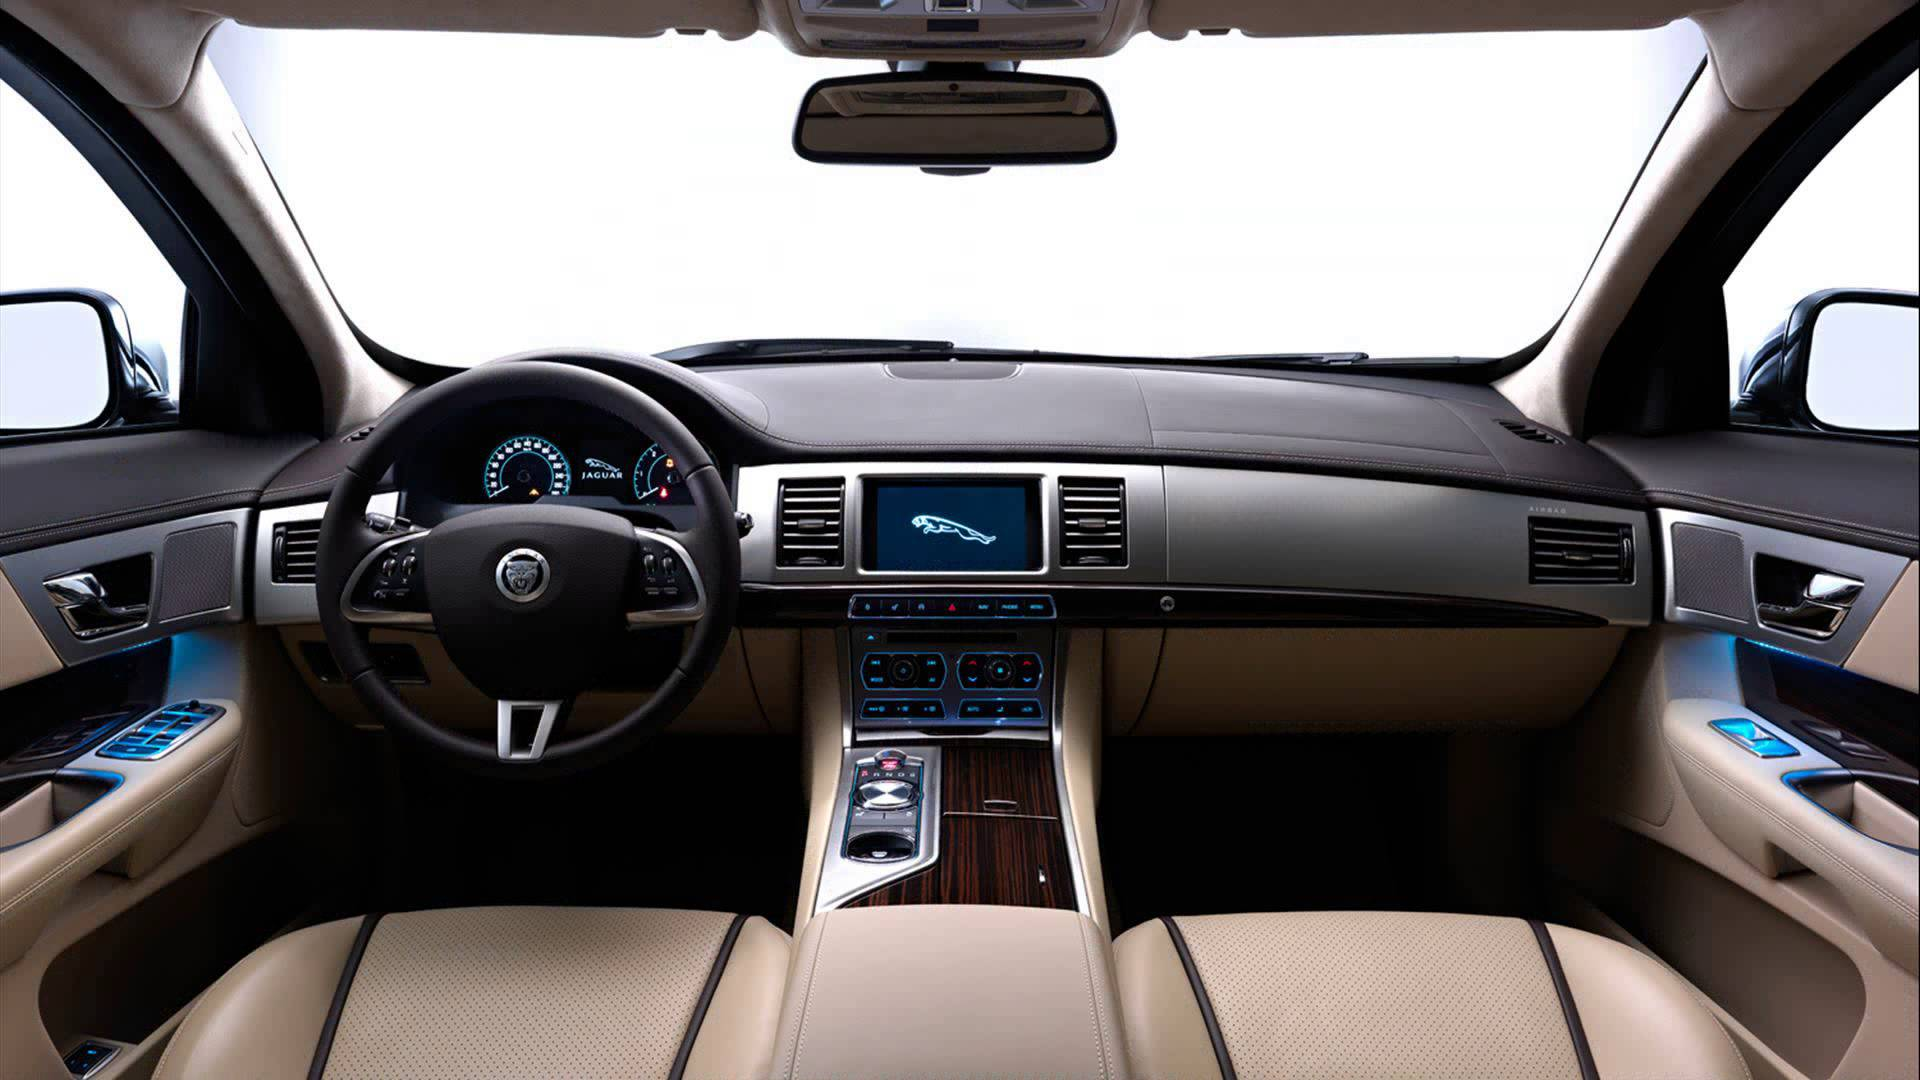 superb-design-of-the-black-dash-ideas-with-grey-seats-ideas-as-the-jaguar-xe-2015-interior-ideas